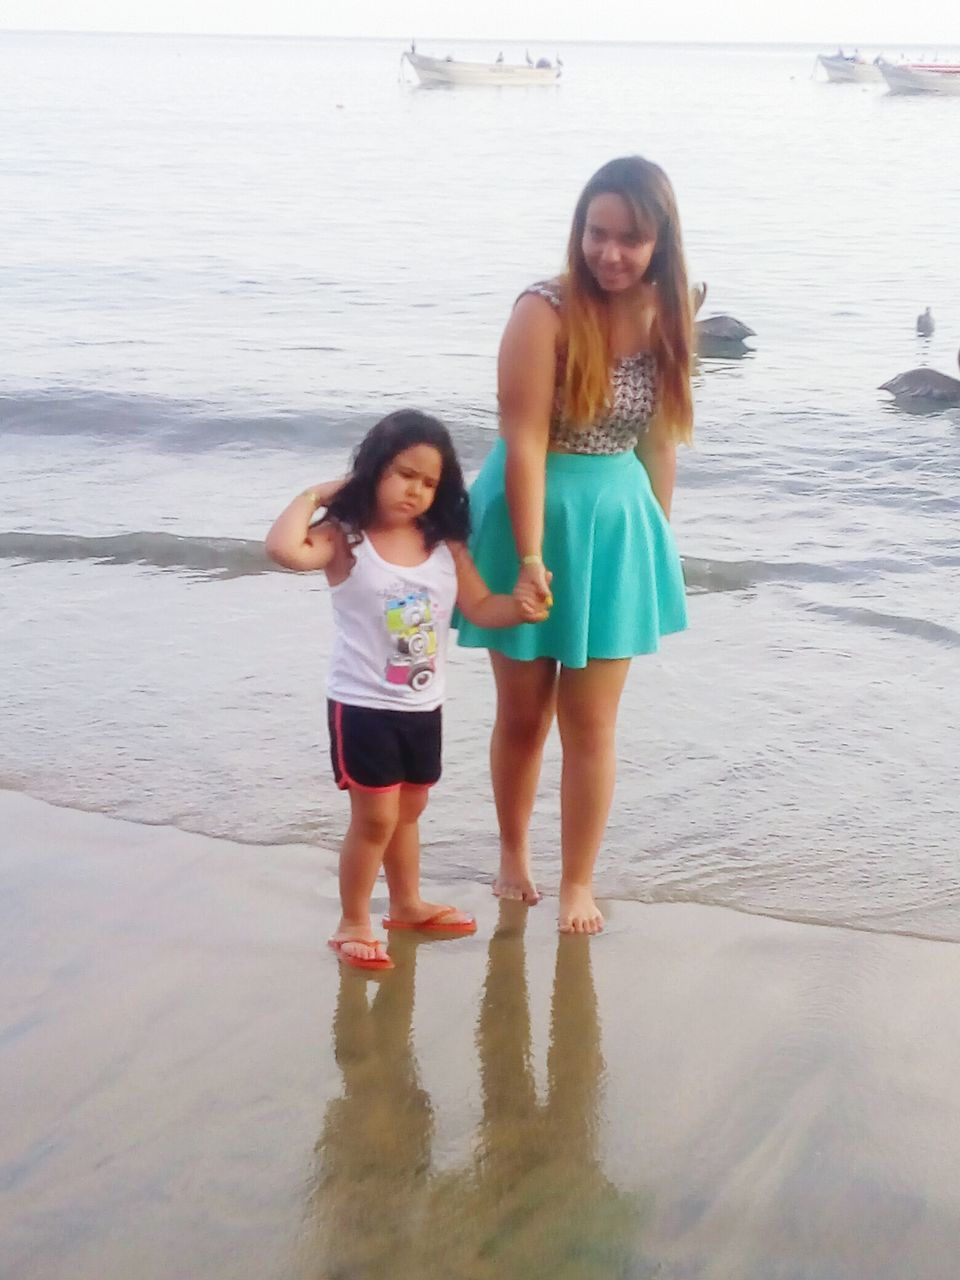 two people, full length, looking at camera, leisure activity, beach, young women, young adult, standing, front view, real people, sea, togetherness, water, vacations, day, casual clothing, portrait, smiling, outdoors, happiness, sand, lifestyles, nature, bonding, girls, childhood, beautiful woman, sky